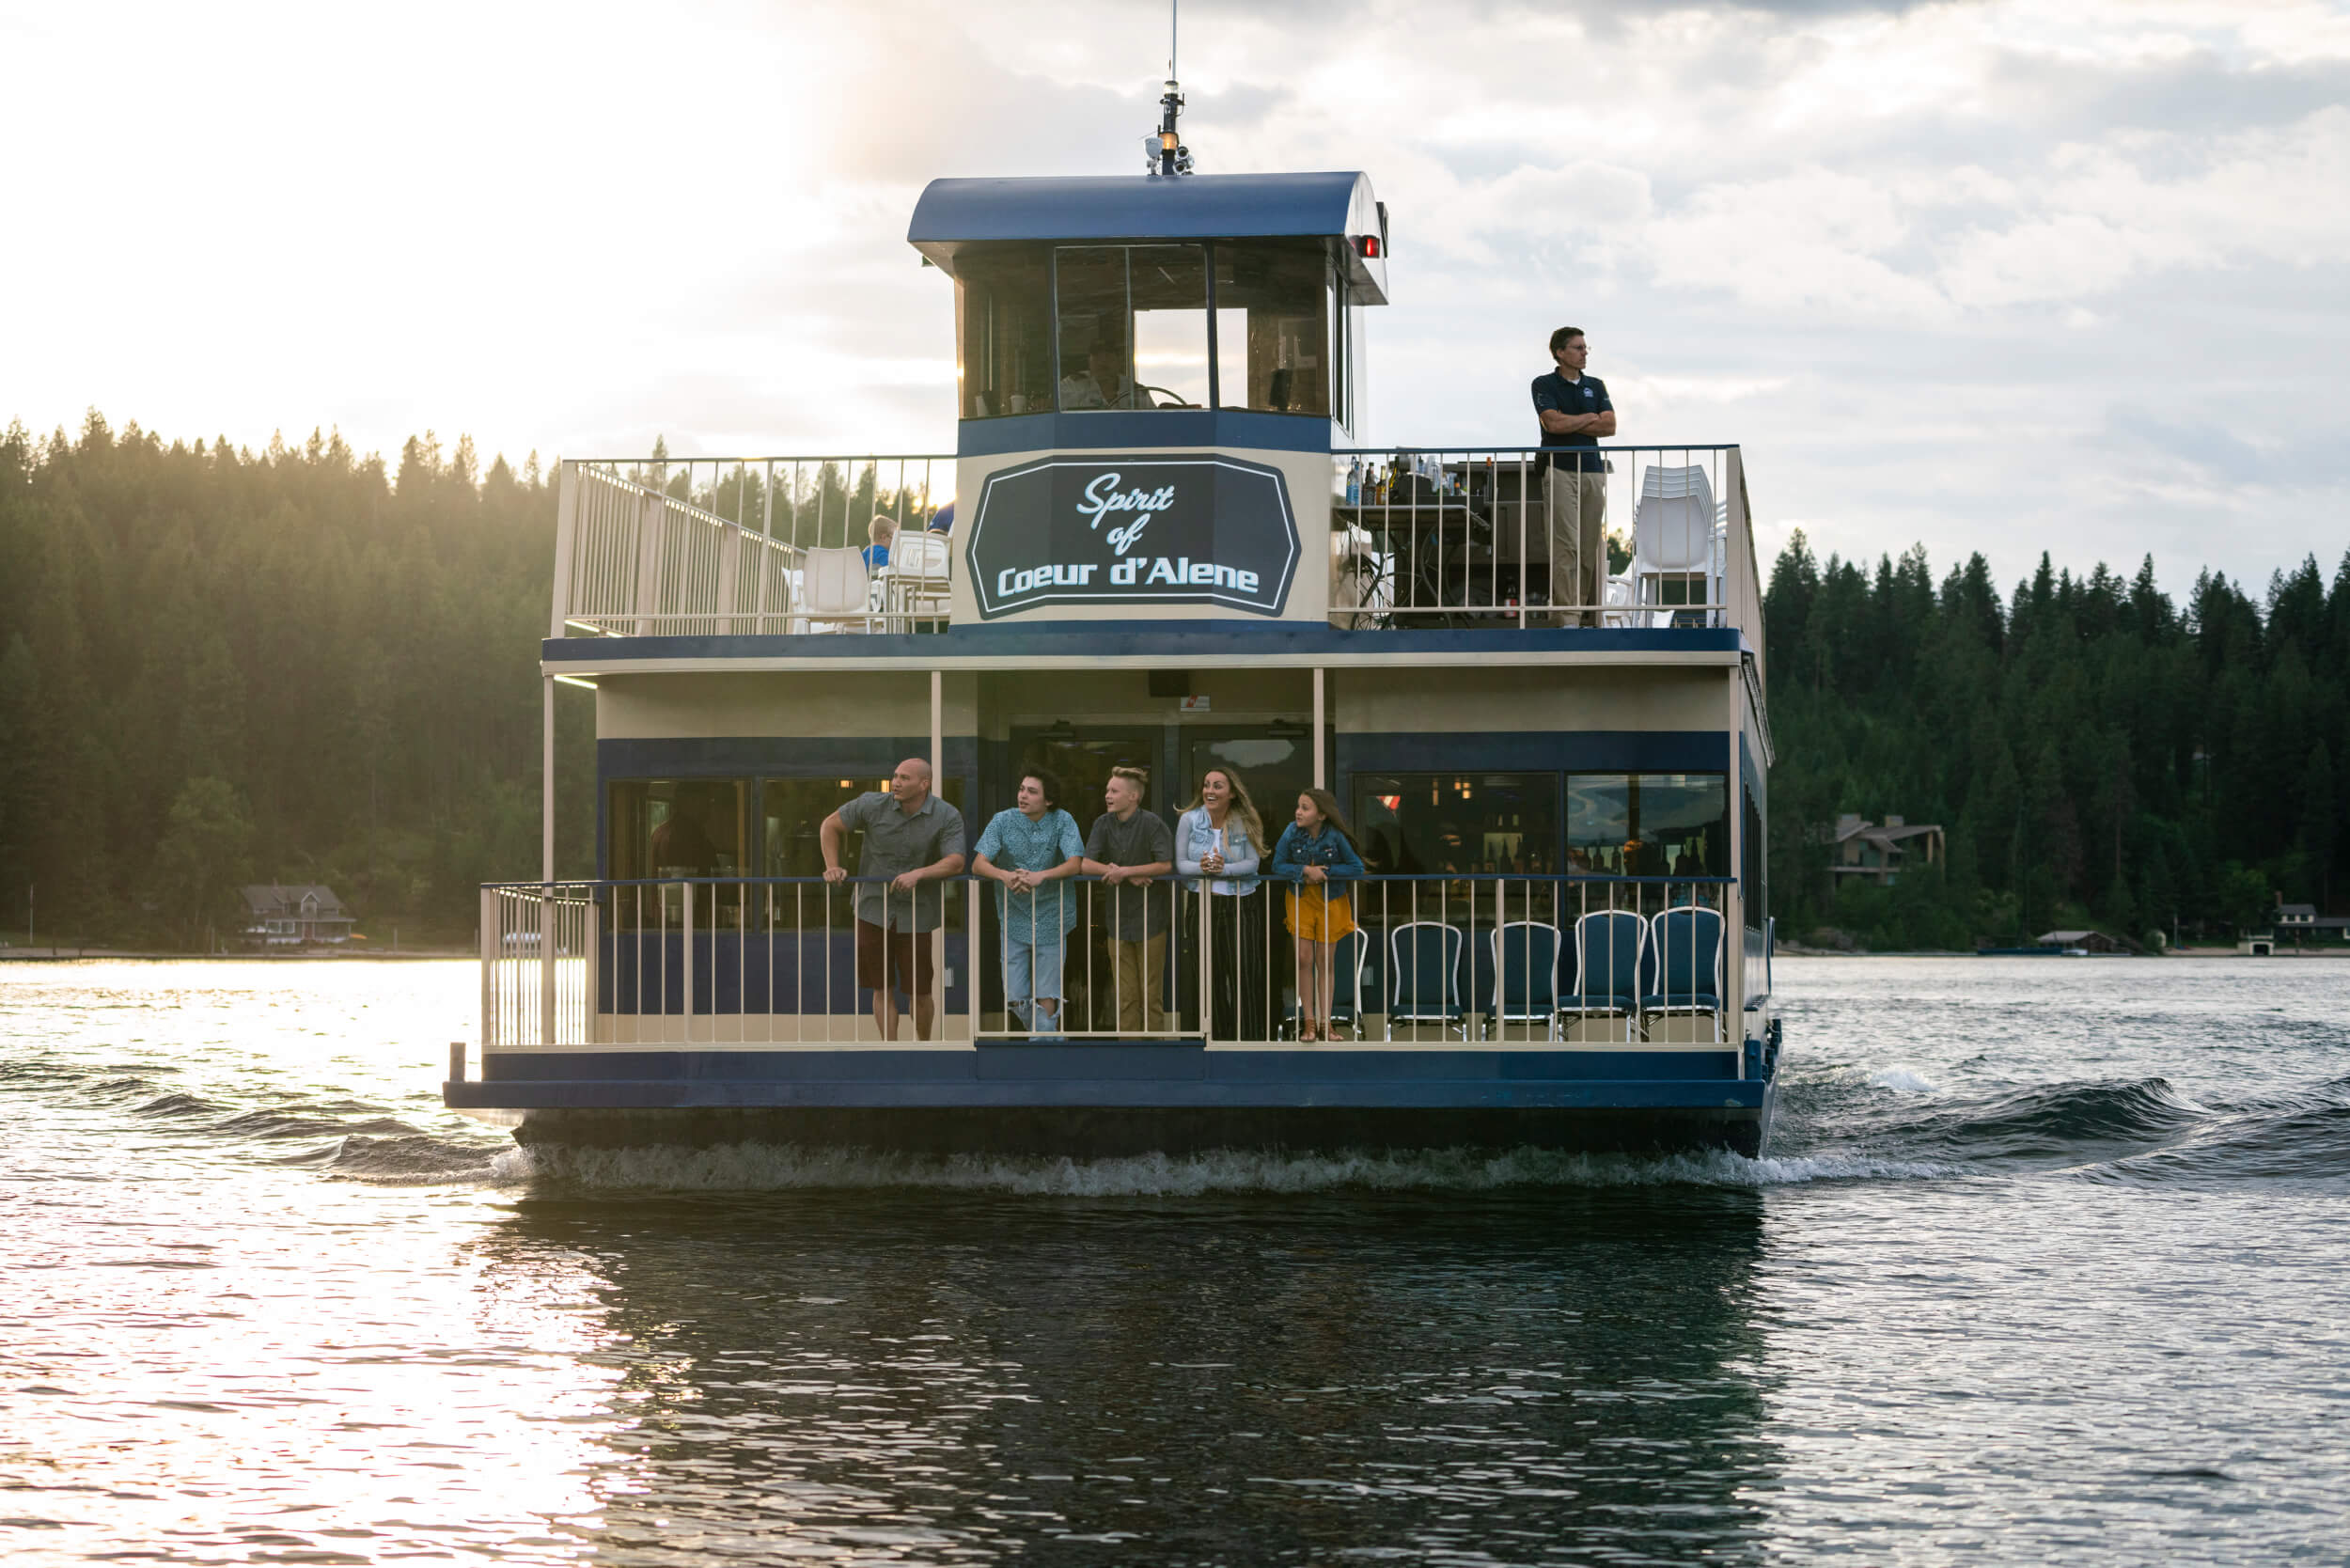 five people leaning on the rails of a CDA cruise ship on Lake Coeur d'Alene